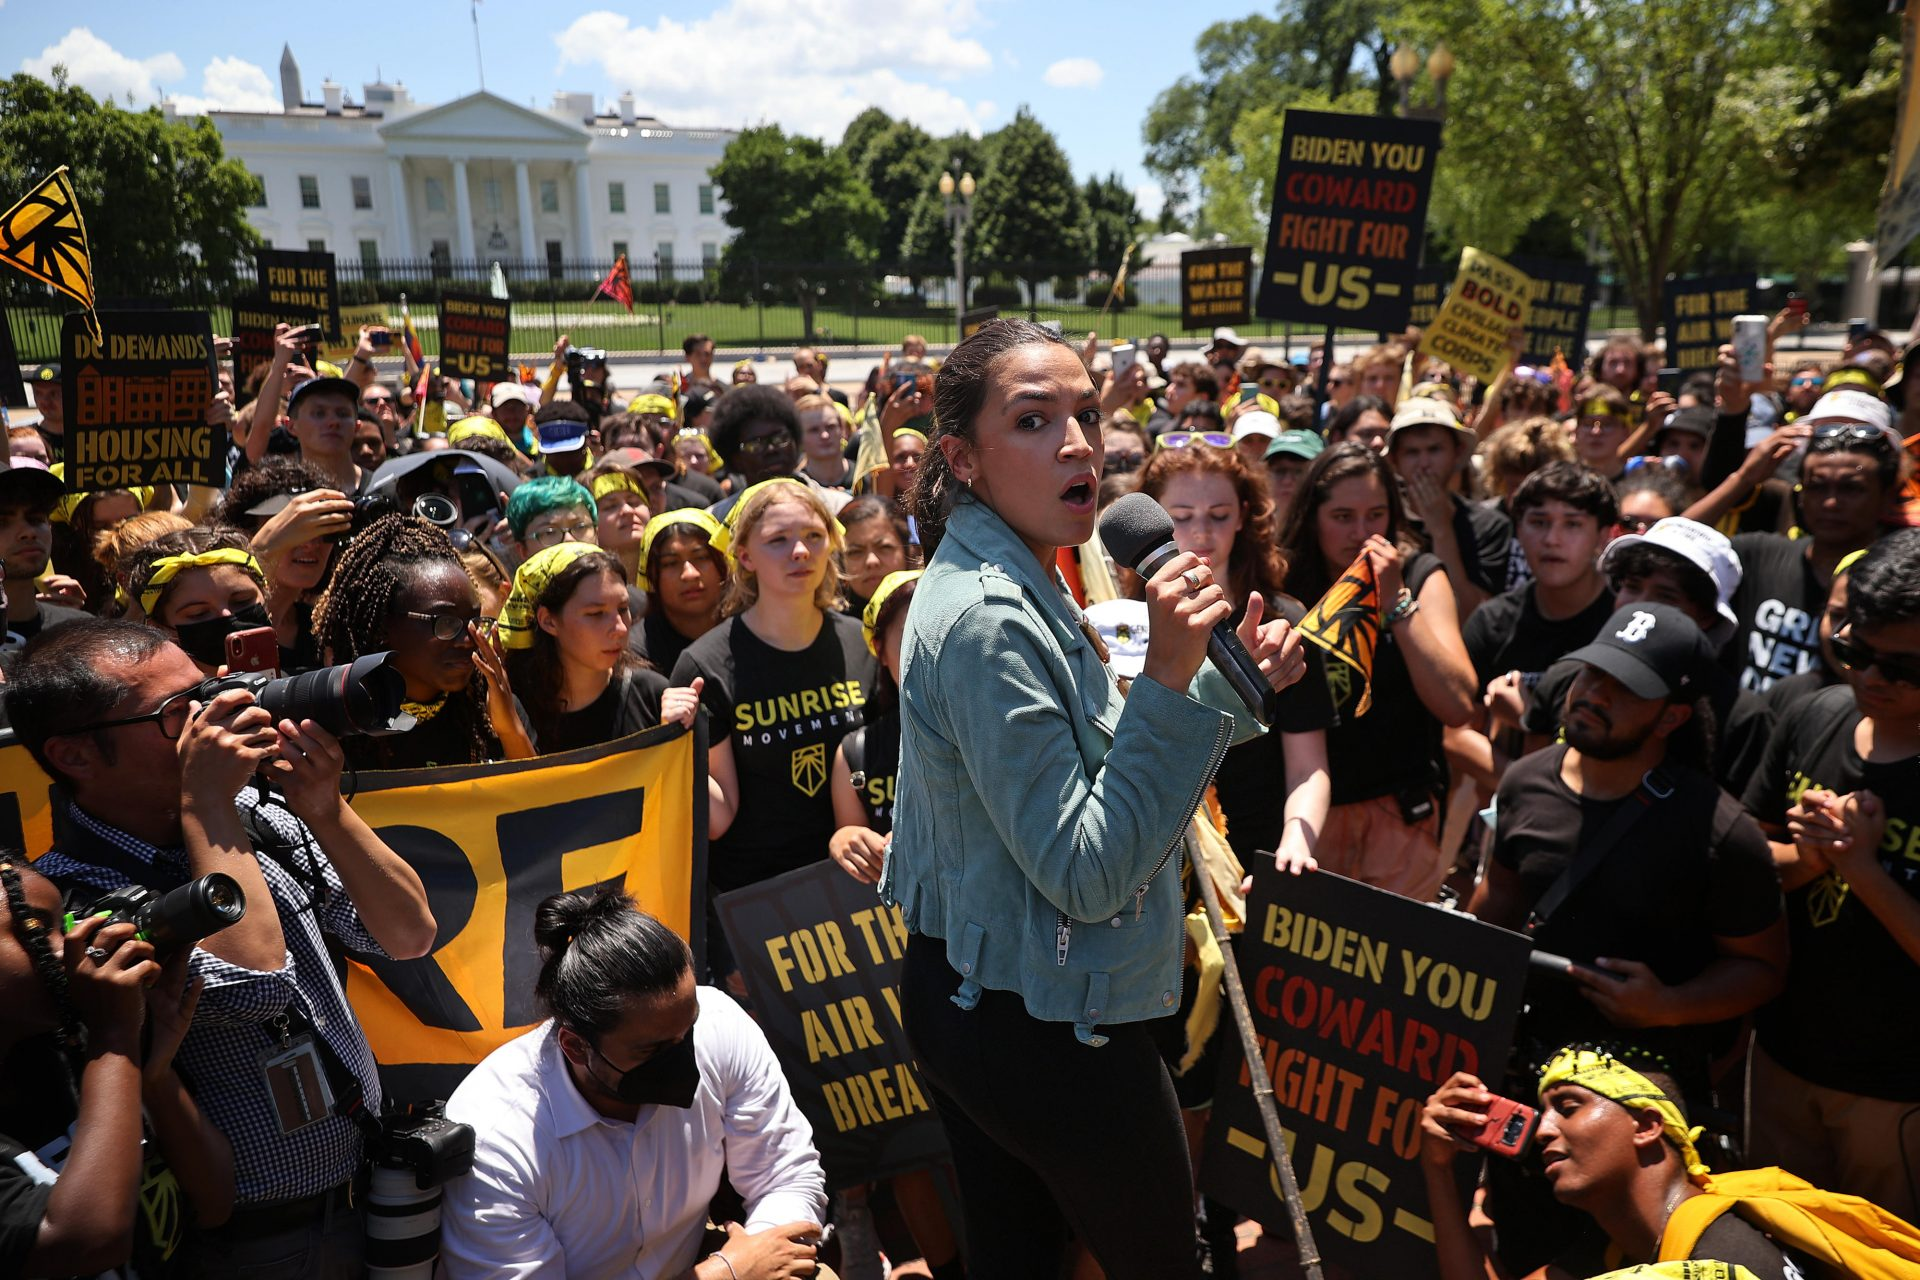 Charismatic US congresswoman Alexandria Ocasio-Cortez - seen at a rally in Washington in June 2021 - is among politicians to have attracted a dedicated and obsessional fanbase. Photo: Chip Somodevilla/Getty